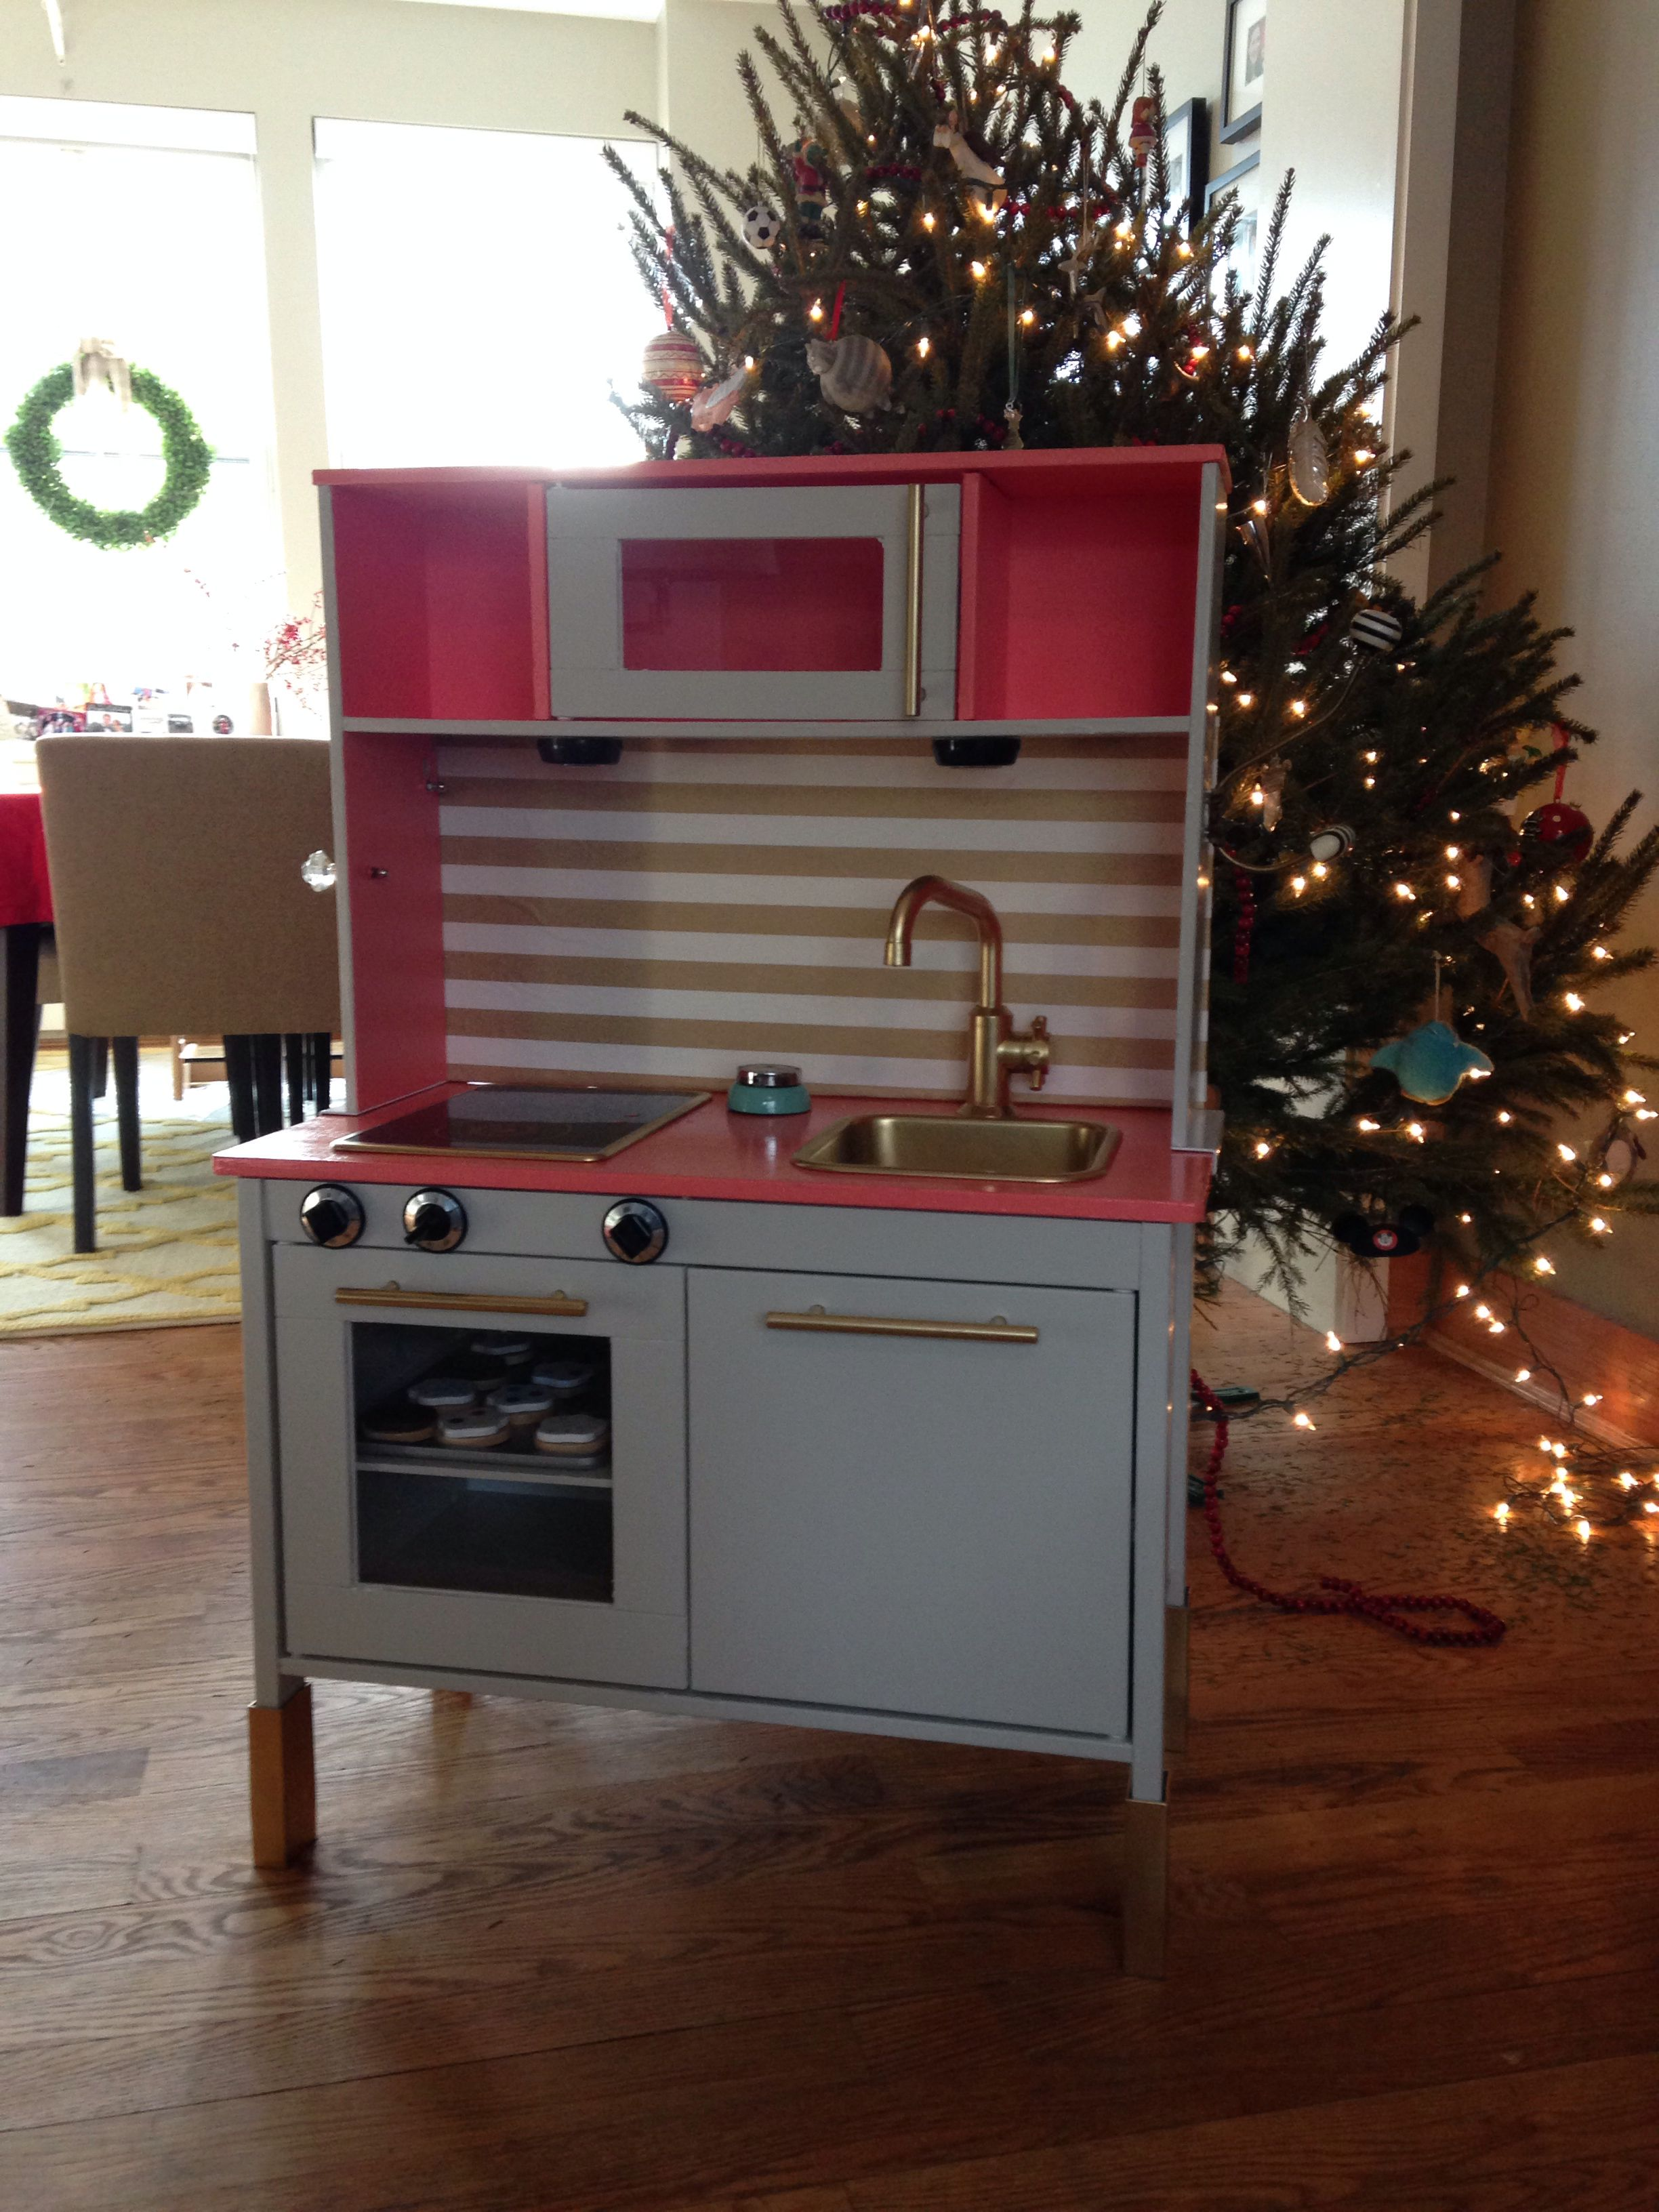 Ikea Hack Kinderküche Ikea Duktig Play Kitchen Hack Emma Xmas 2013 Emma 39s